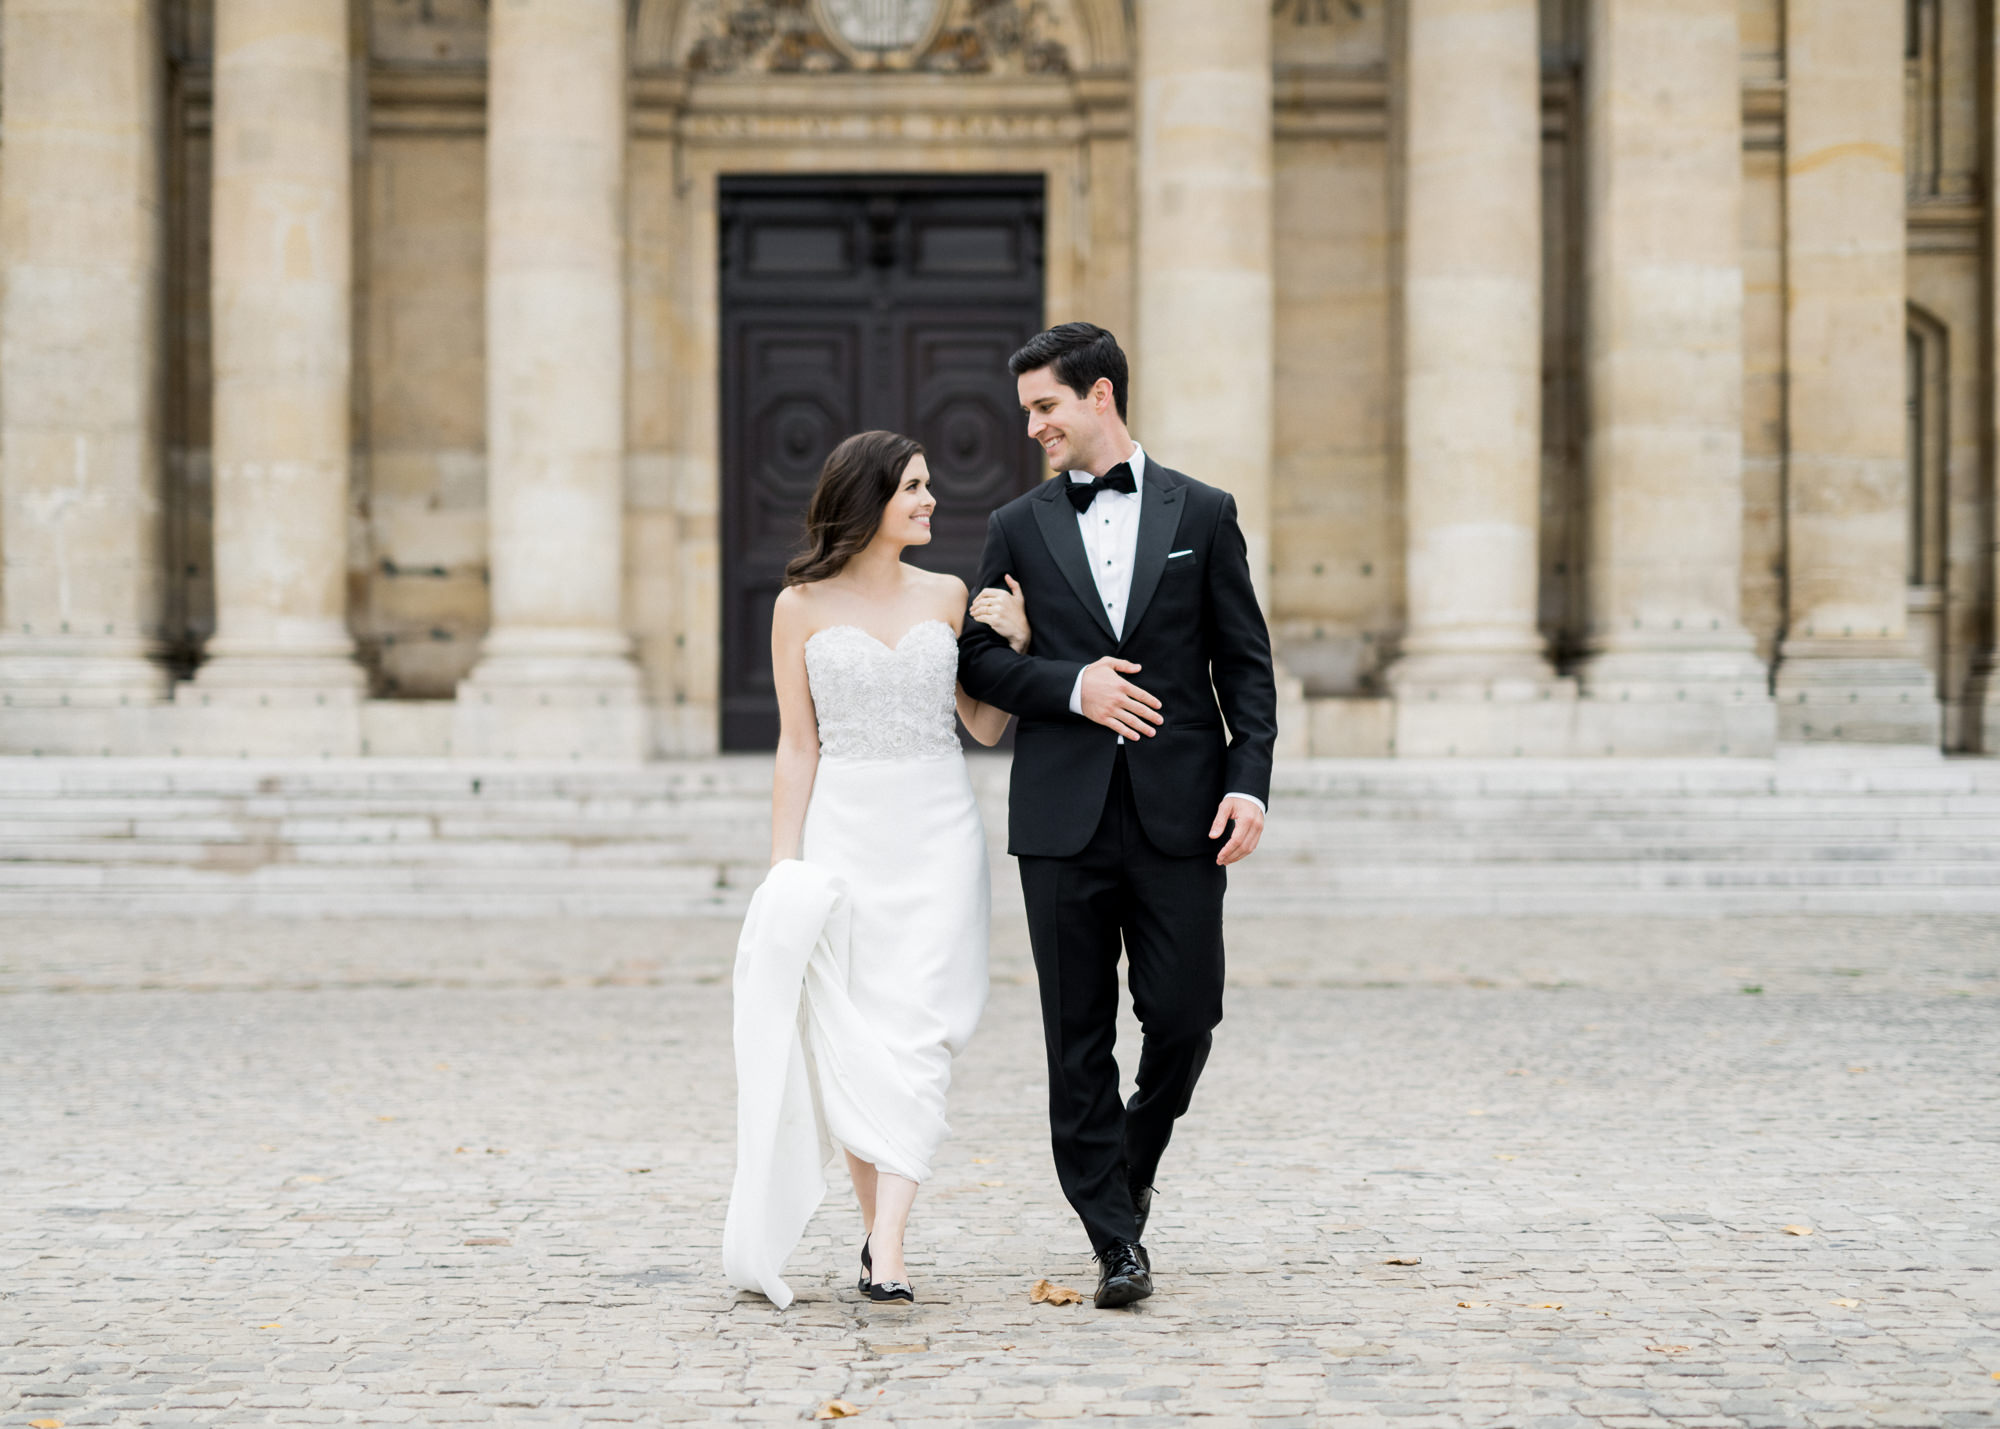 4c32c4e4d89c ROCK MY WEDDING | UK WEDDING BLOG & DIRECTORY - The best UK wedding blog &  directory for brides and grooms featuring real weddings, inspiration, ideas  and ...